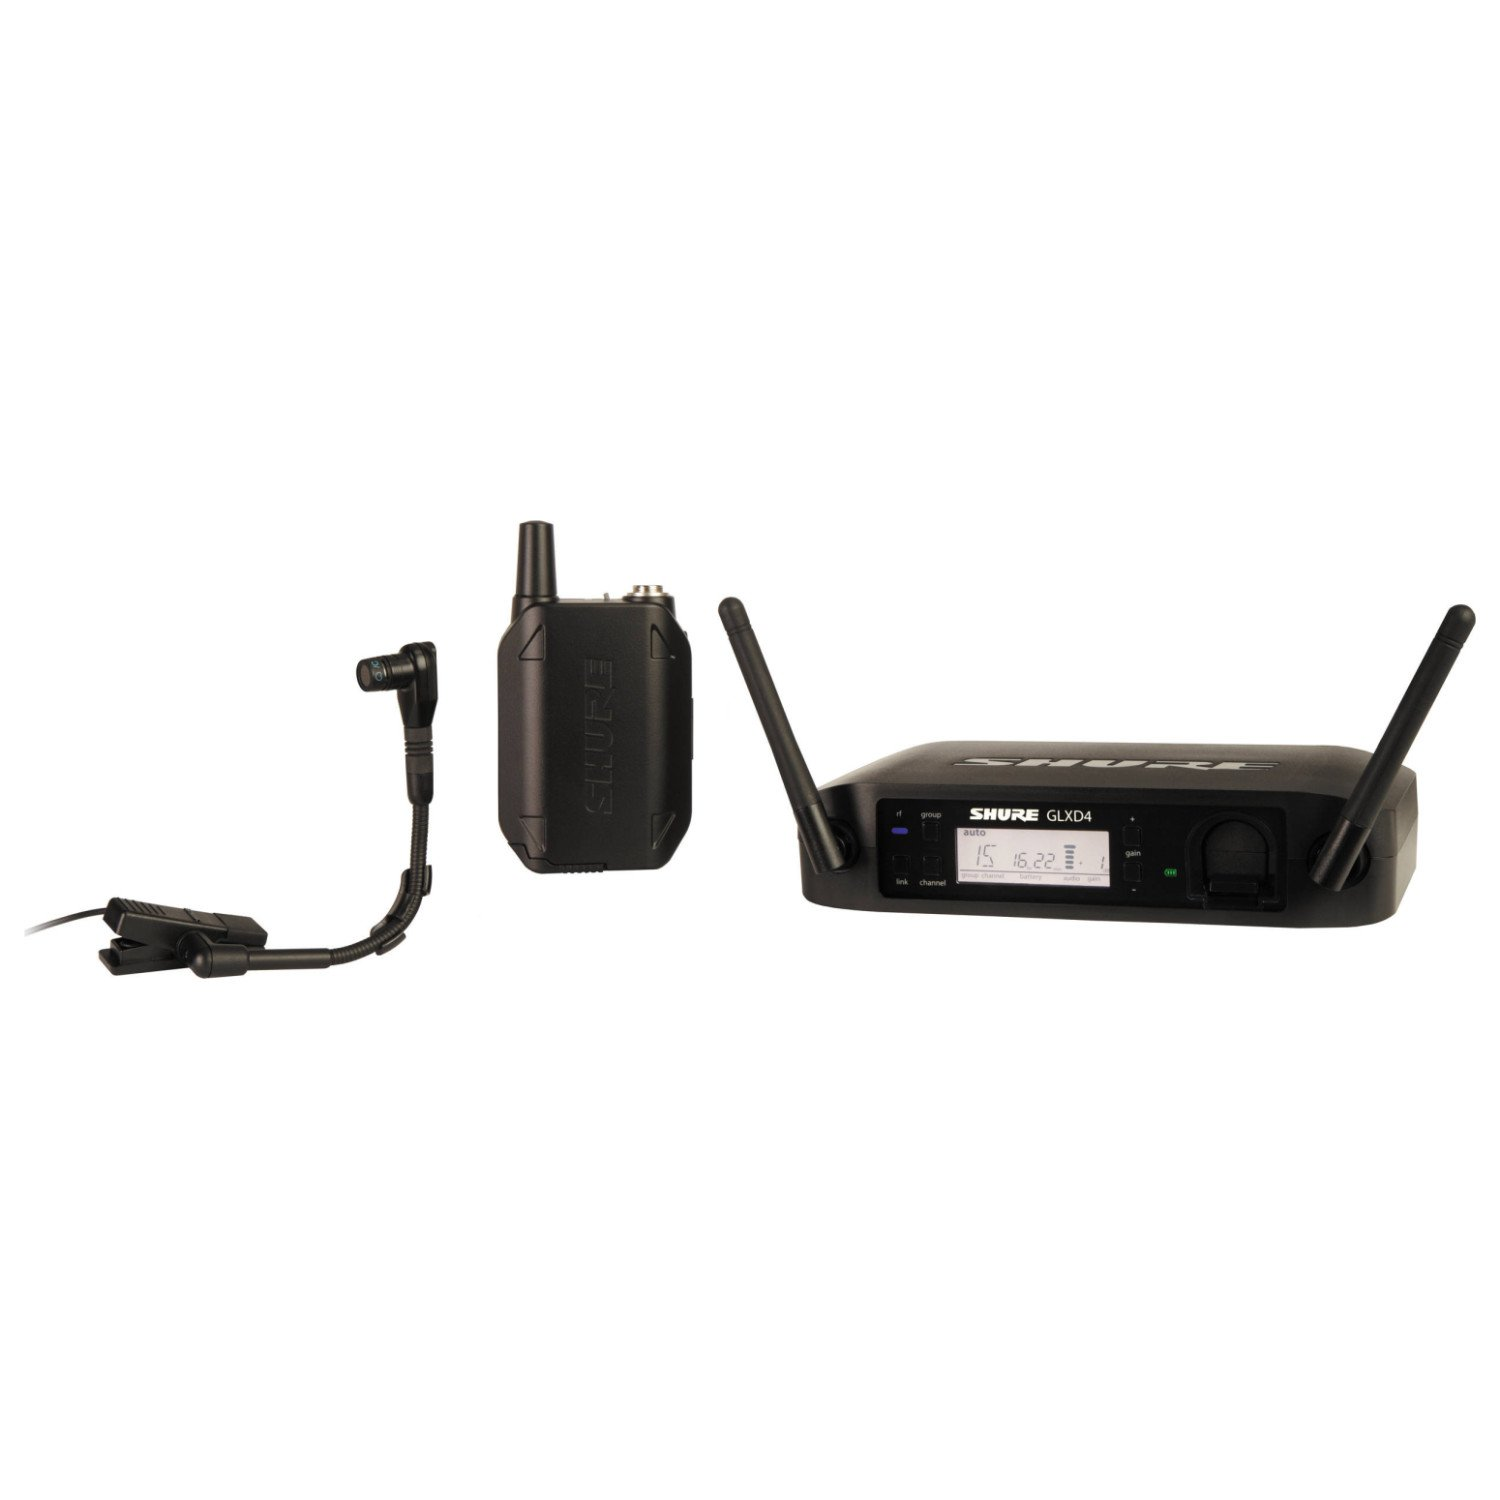 Shure GLXD14/B98 Instrument Wireless System with GLXD4 Wireless Receiver, GLXD1 Bodypack Transmitter, WB98H/C Microphone and Carrying Case by Shure